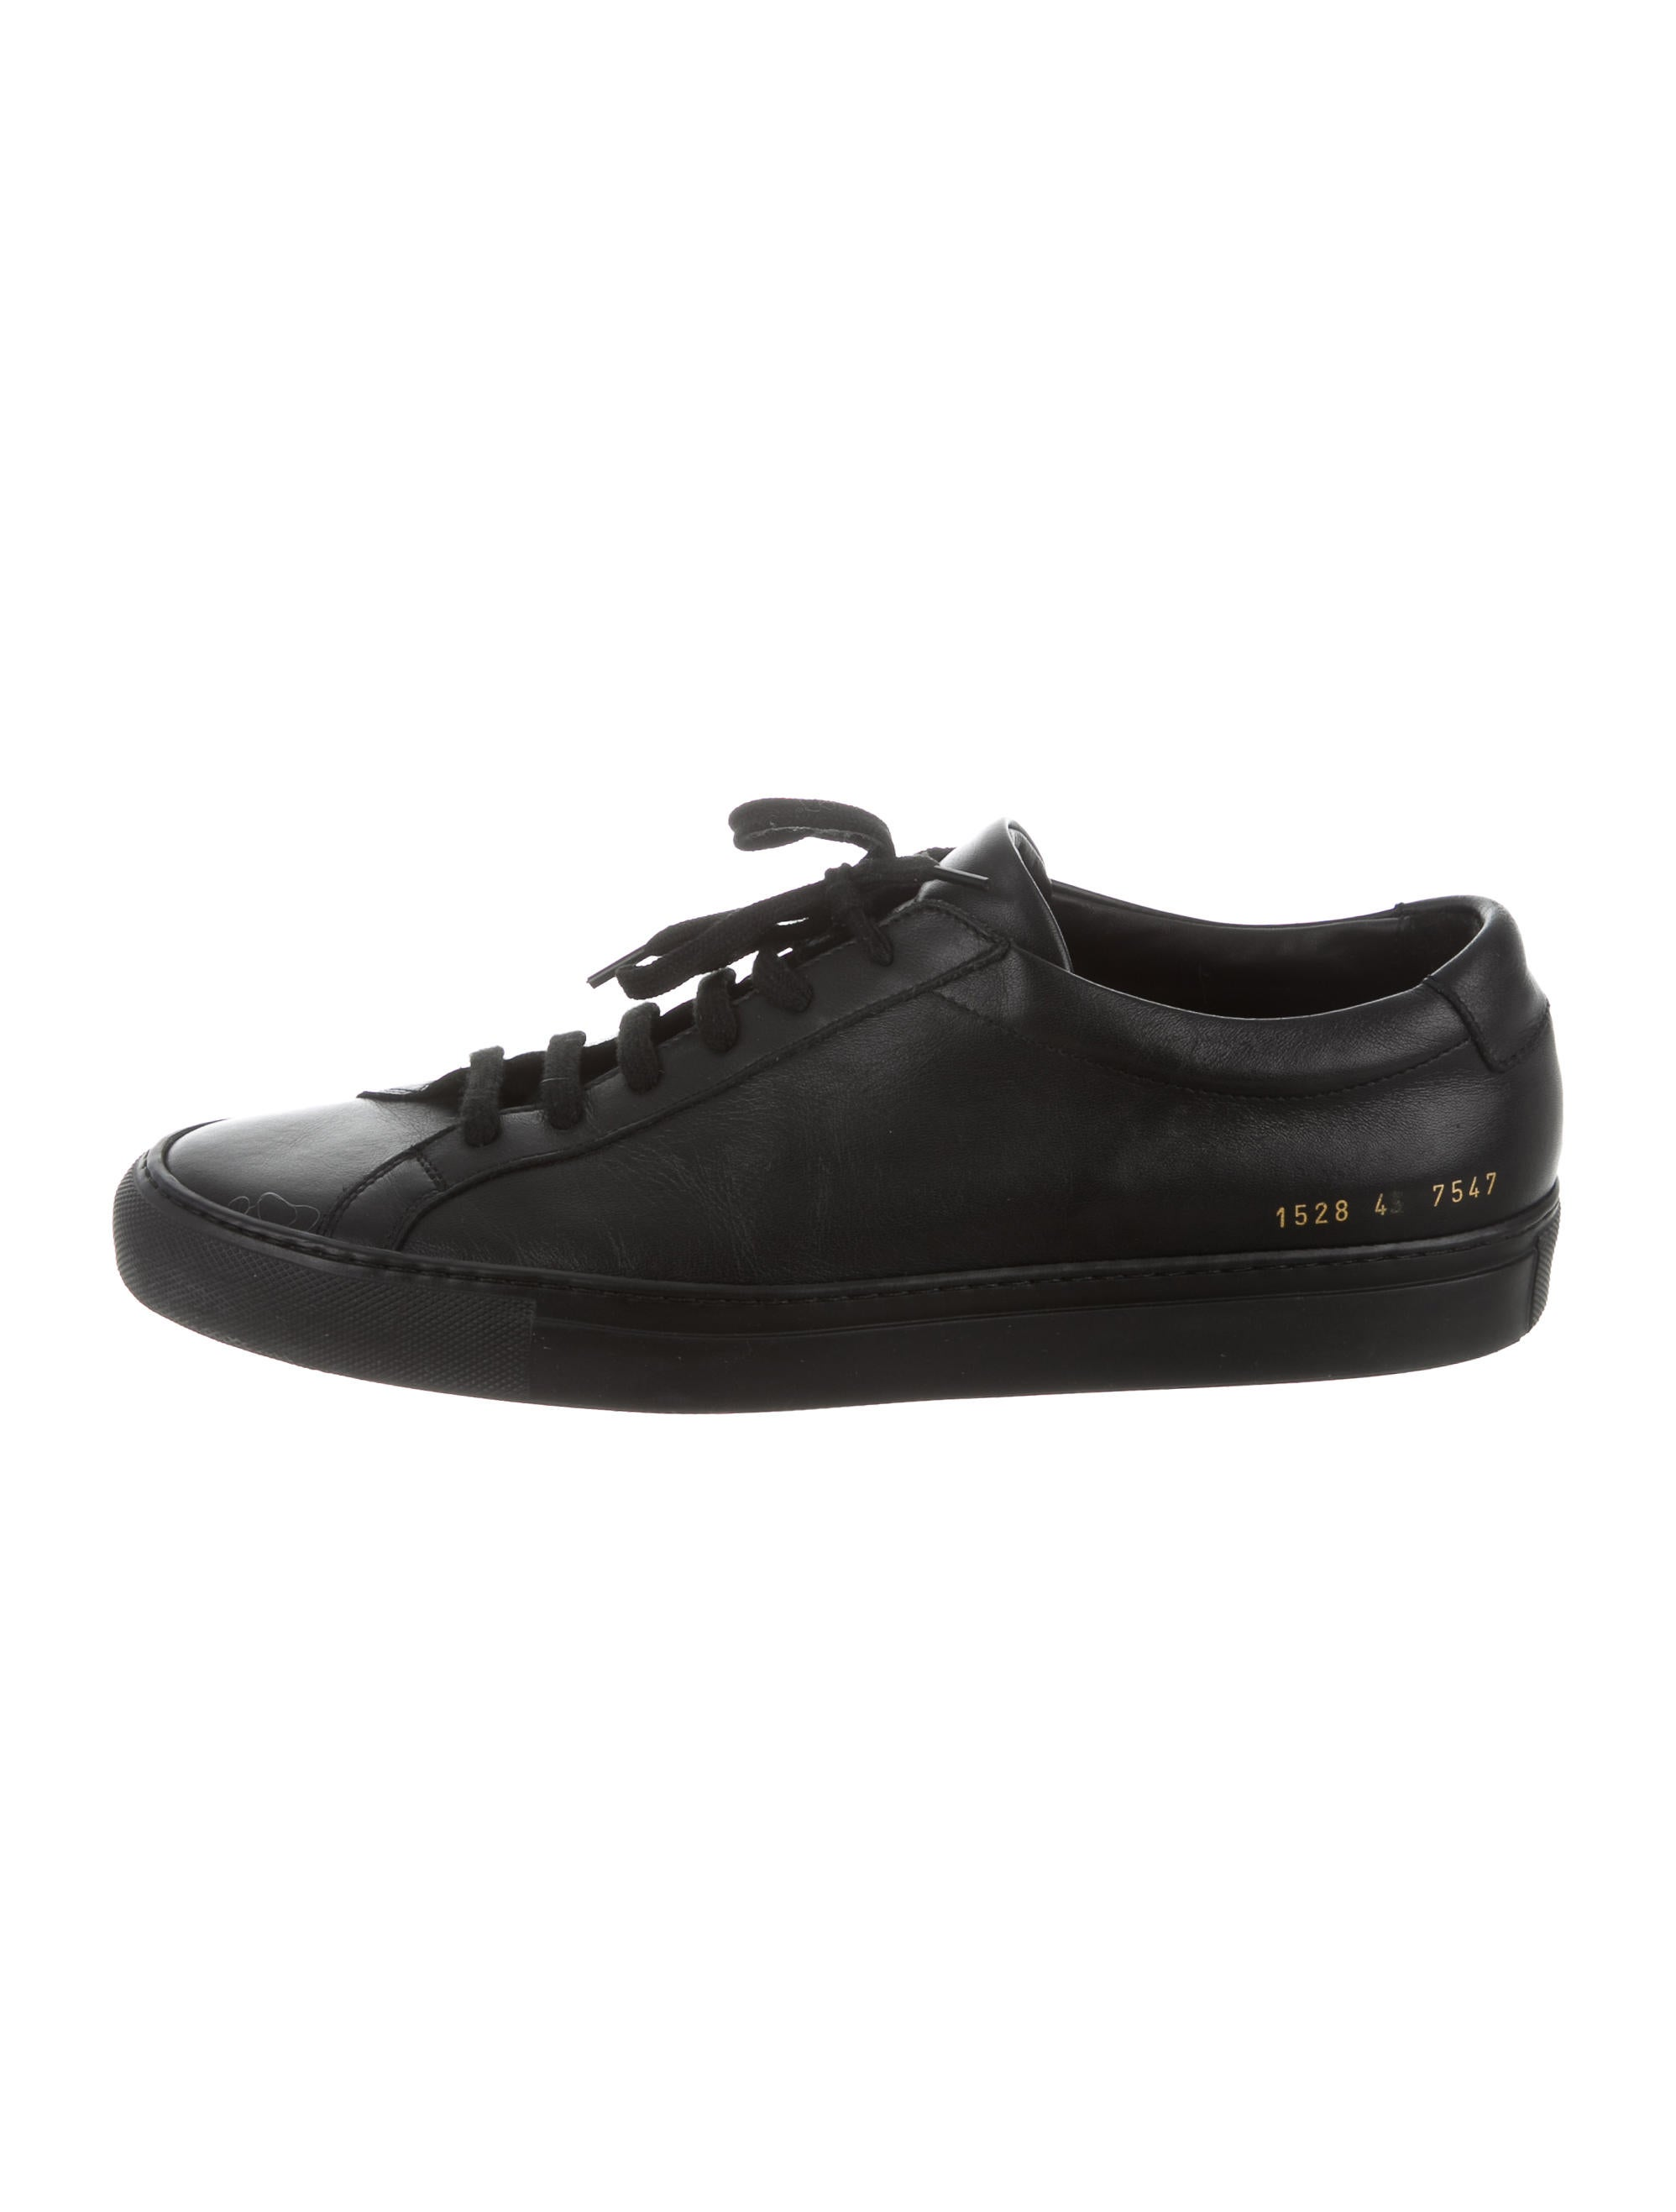 common project shoes 2018 online shopping for popular & hot common projects from sports & entertainment, skateboarding shoes, skateboarding, walking shoes and more related common projects like common projects.